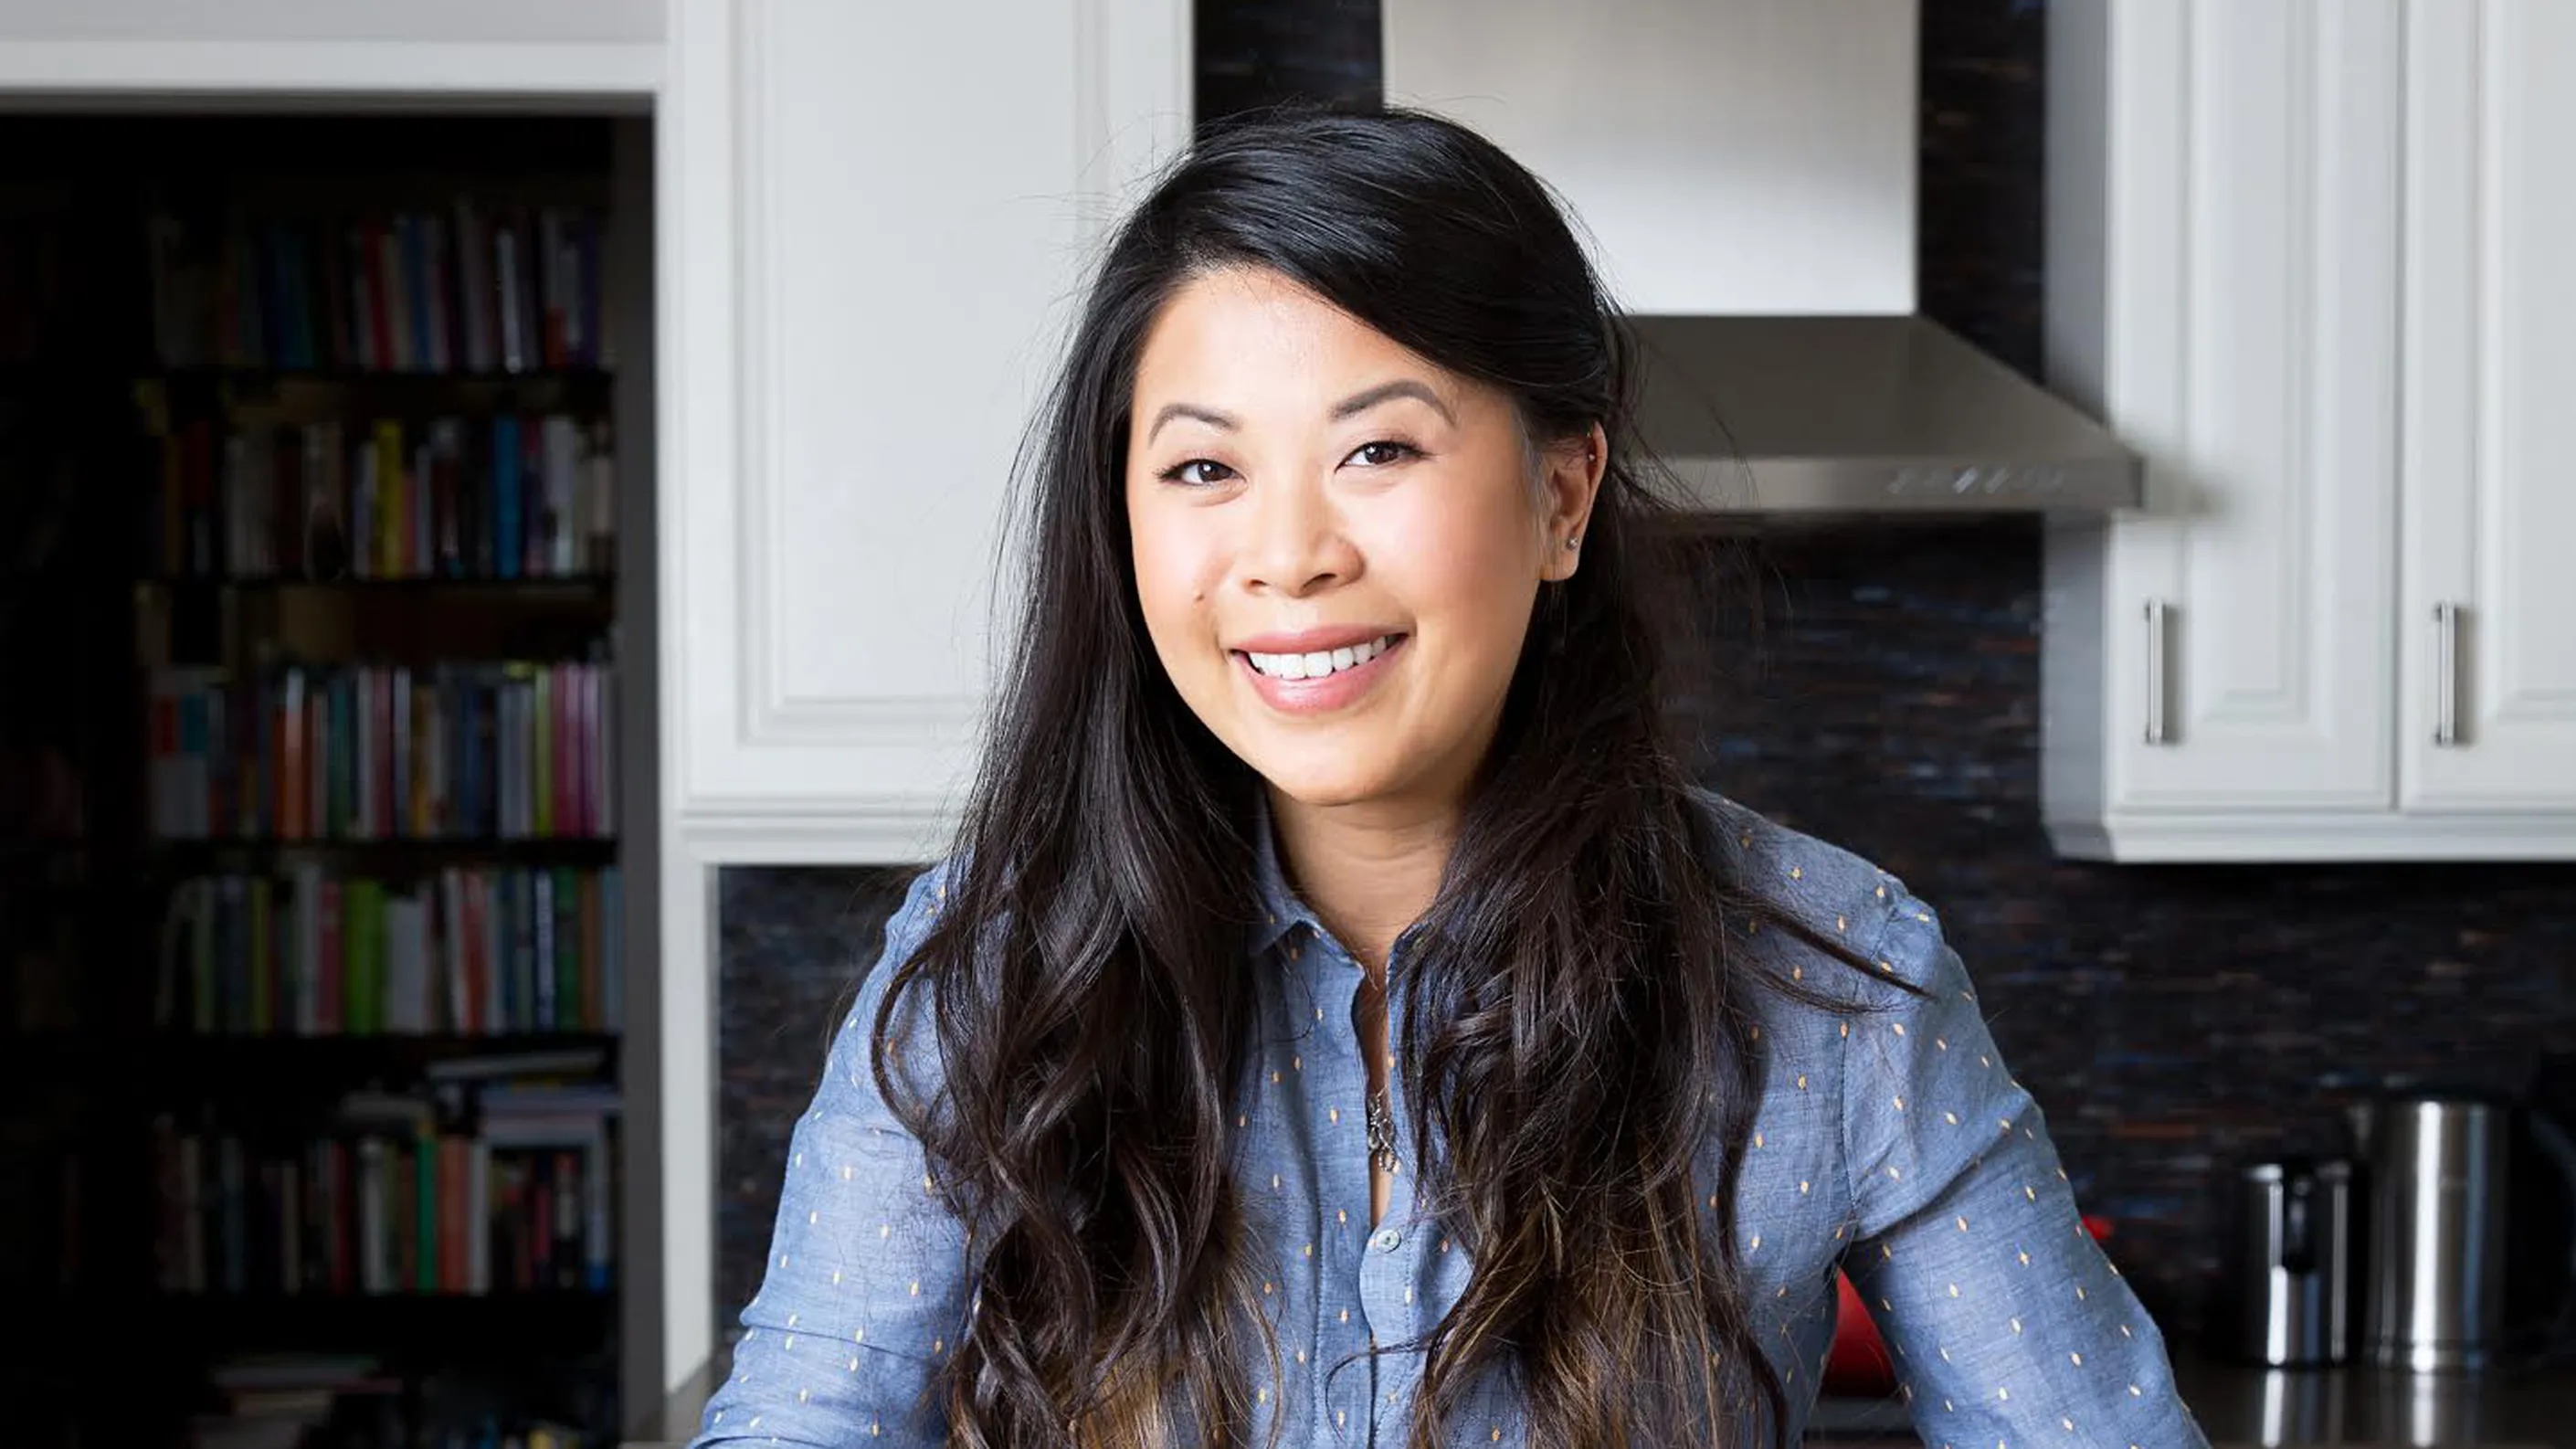 Mei Lin is the first guest chef in Albi's Habibi Sofra Club series